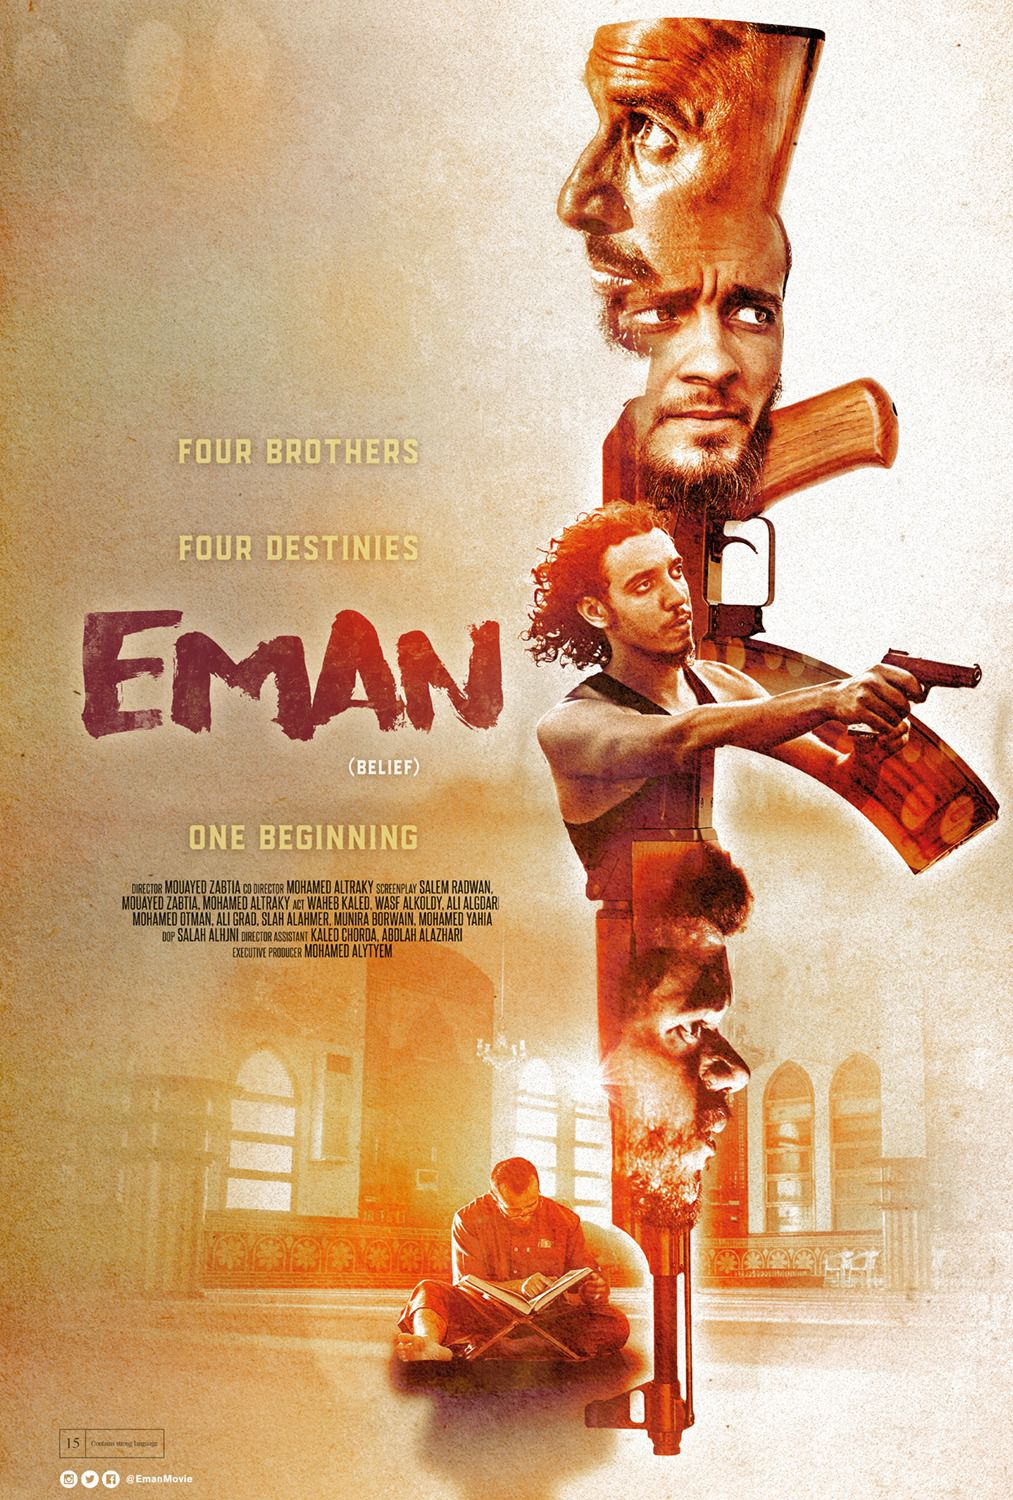 Eman - Belief - four brothers, four destinies, one beginning - film poster